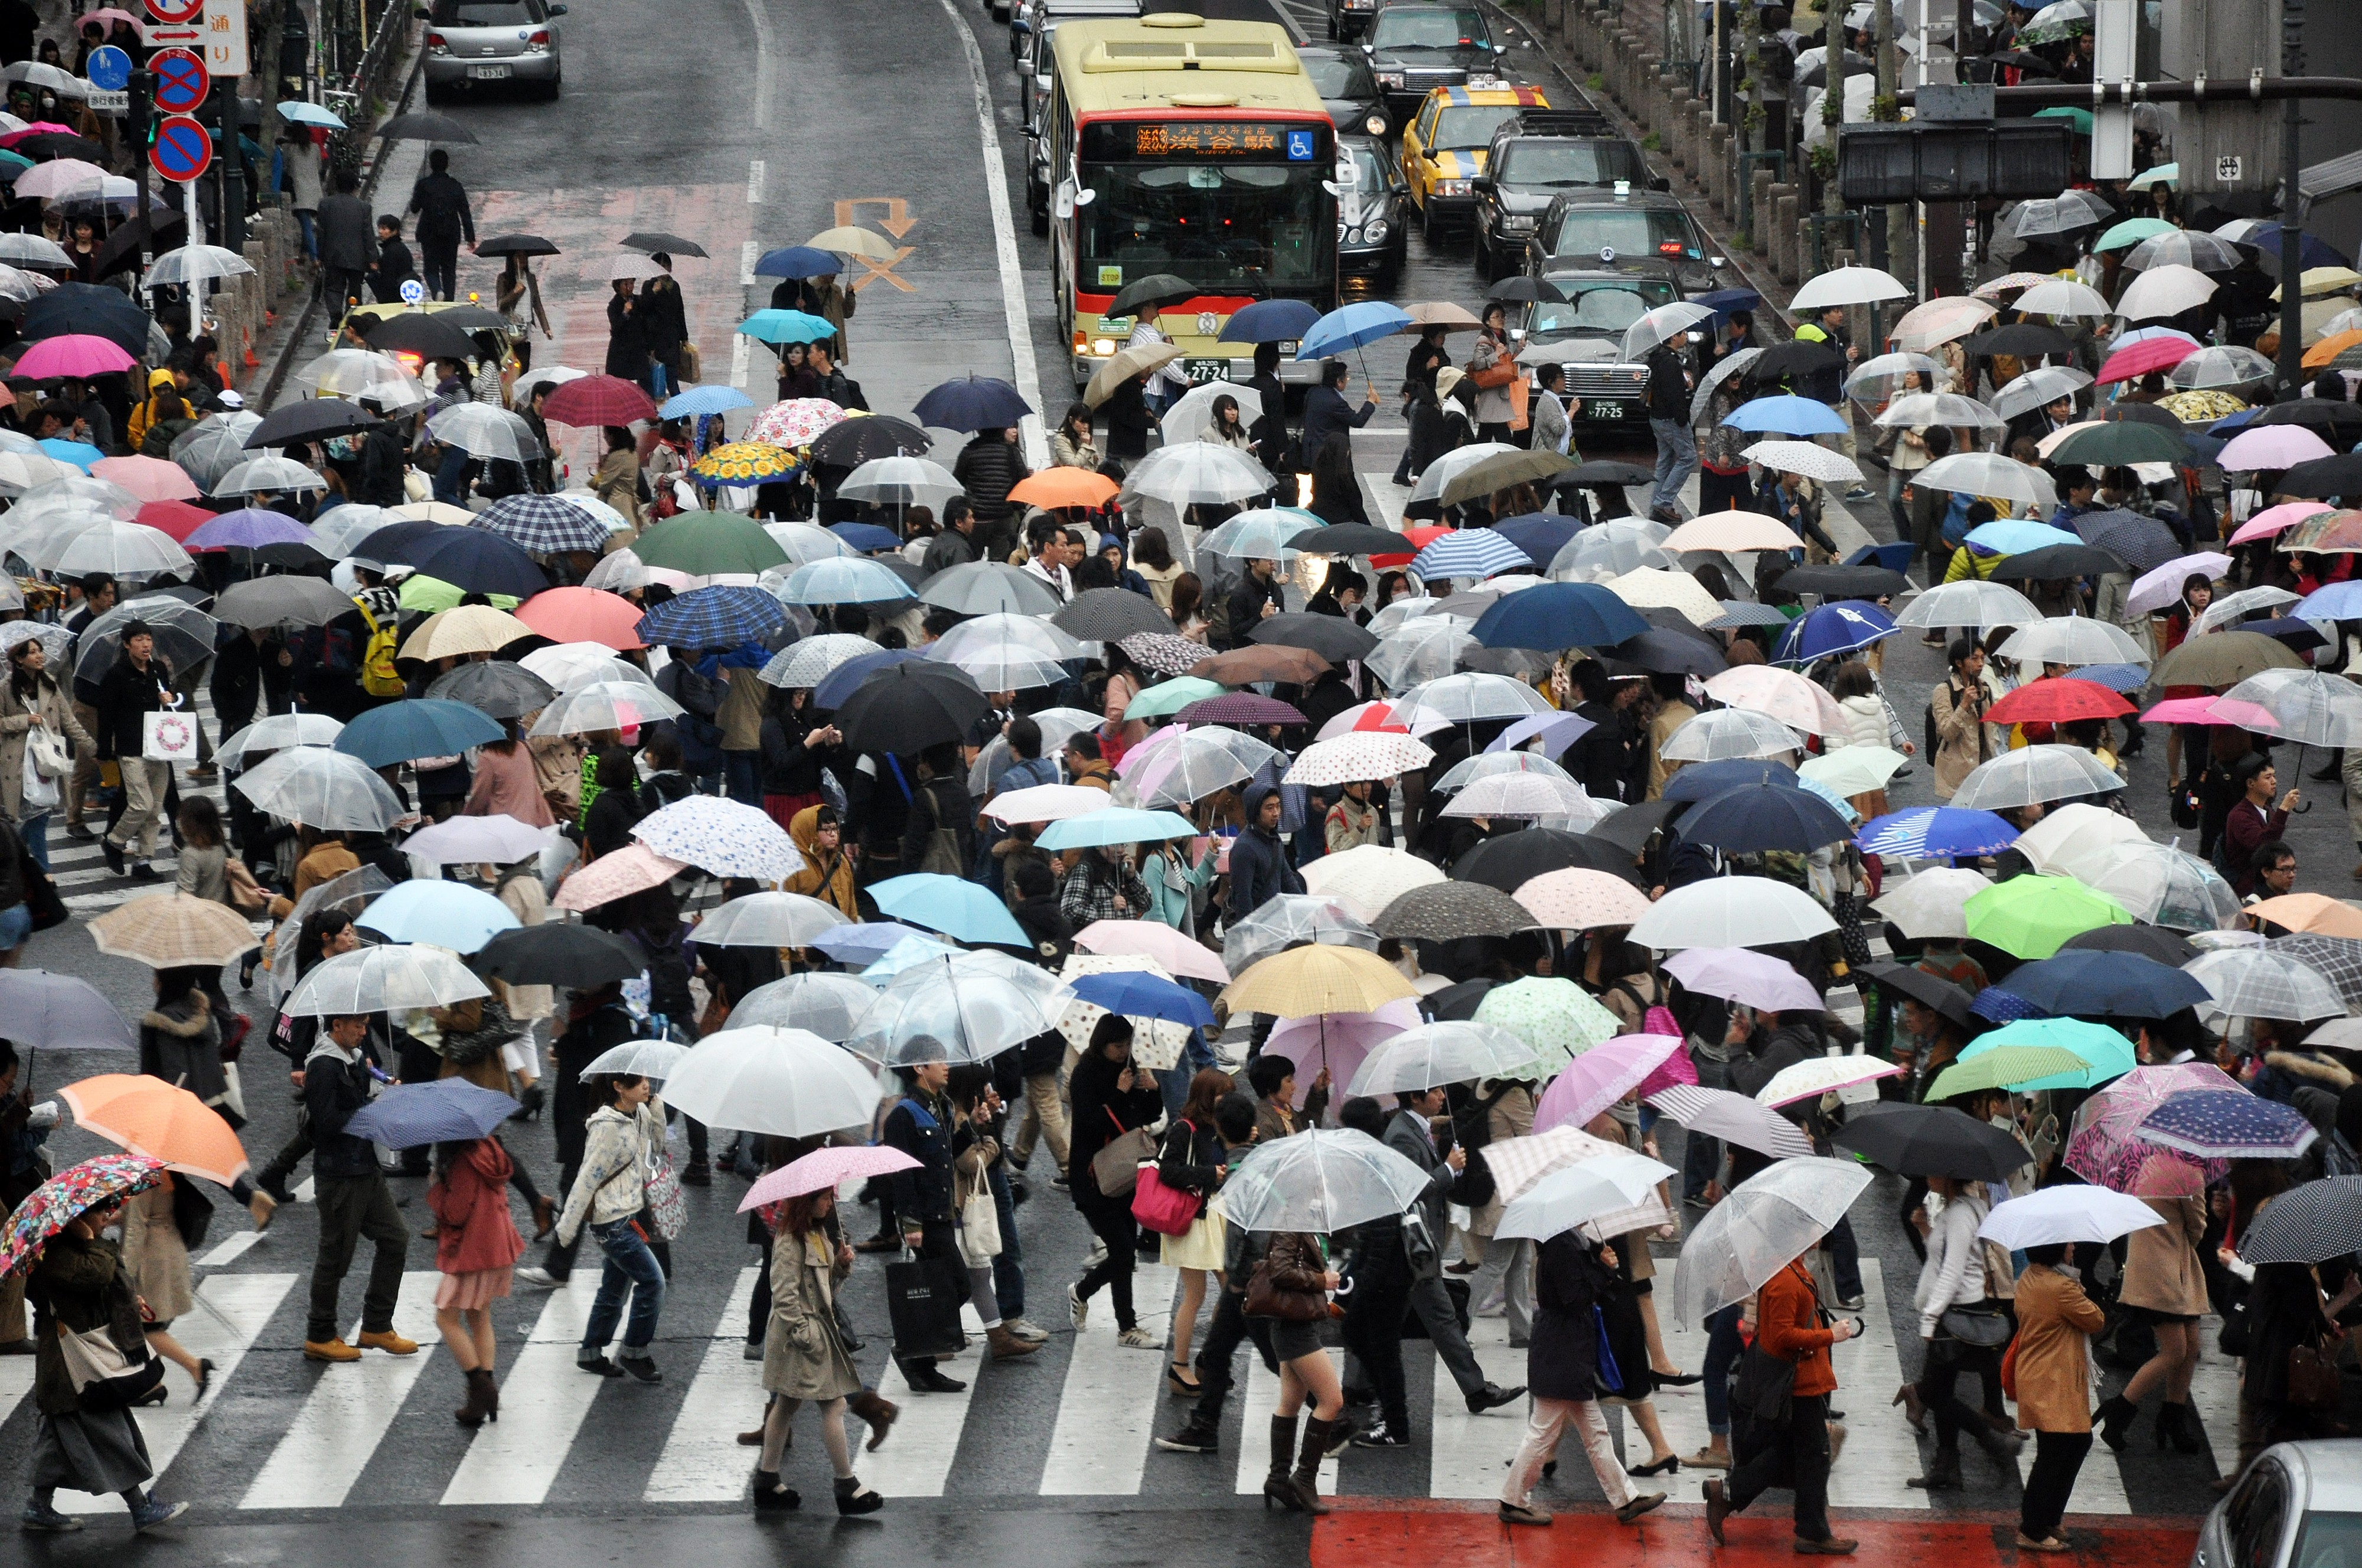 The crowds of Tokyo